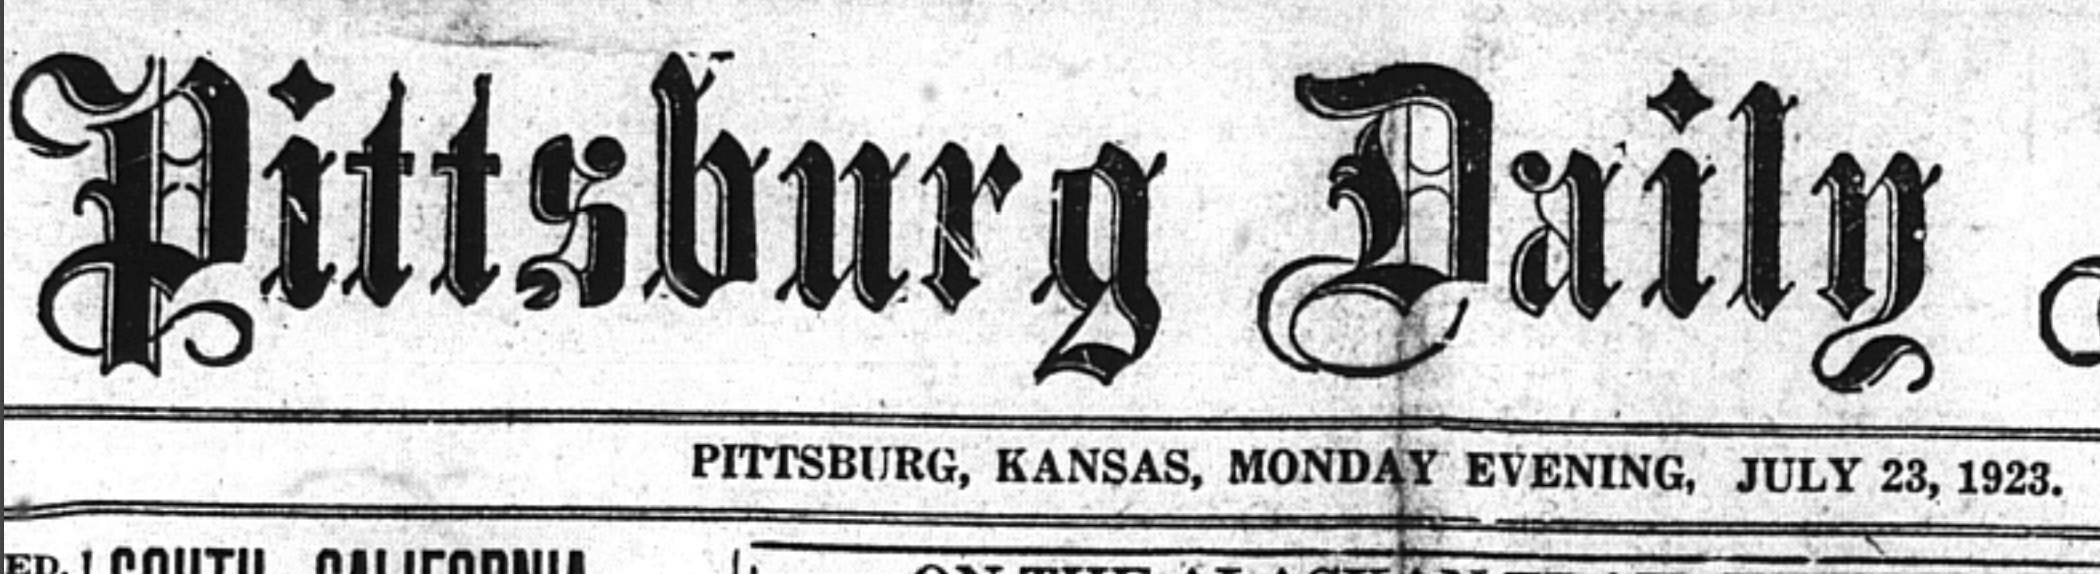 A newspaper of the time that reported the activity of the Klan and Davis' stance on hoods.